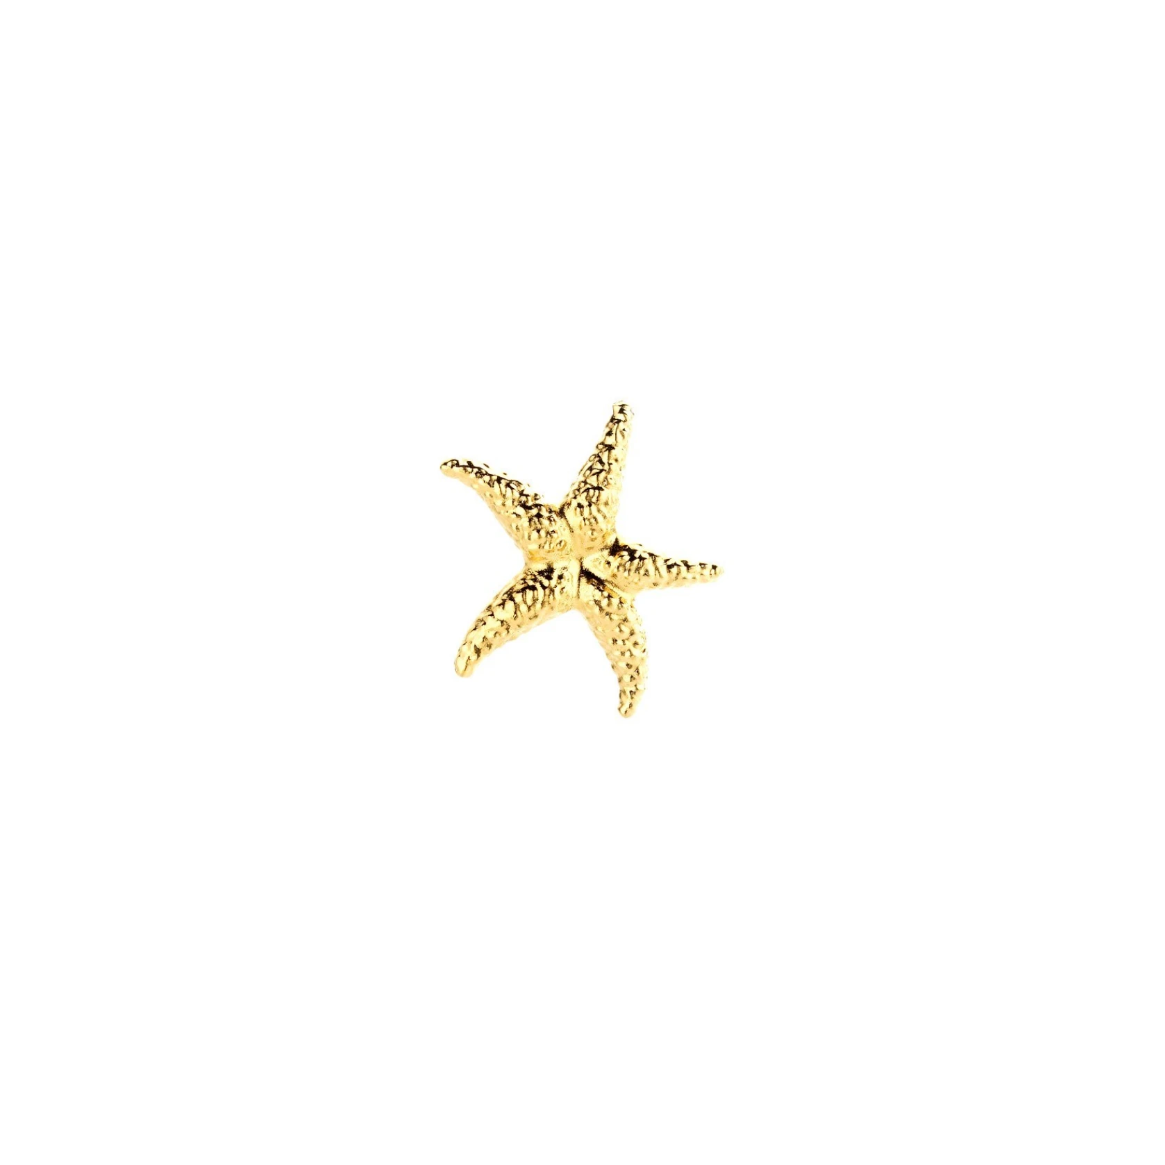 SINGLE Seastar gold earring